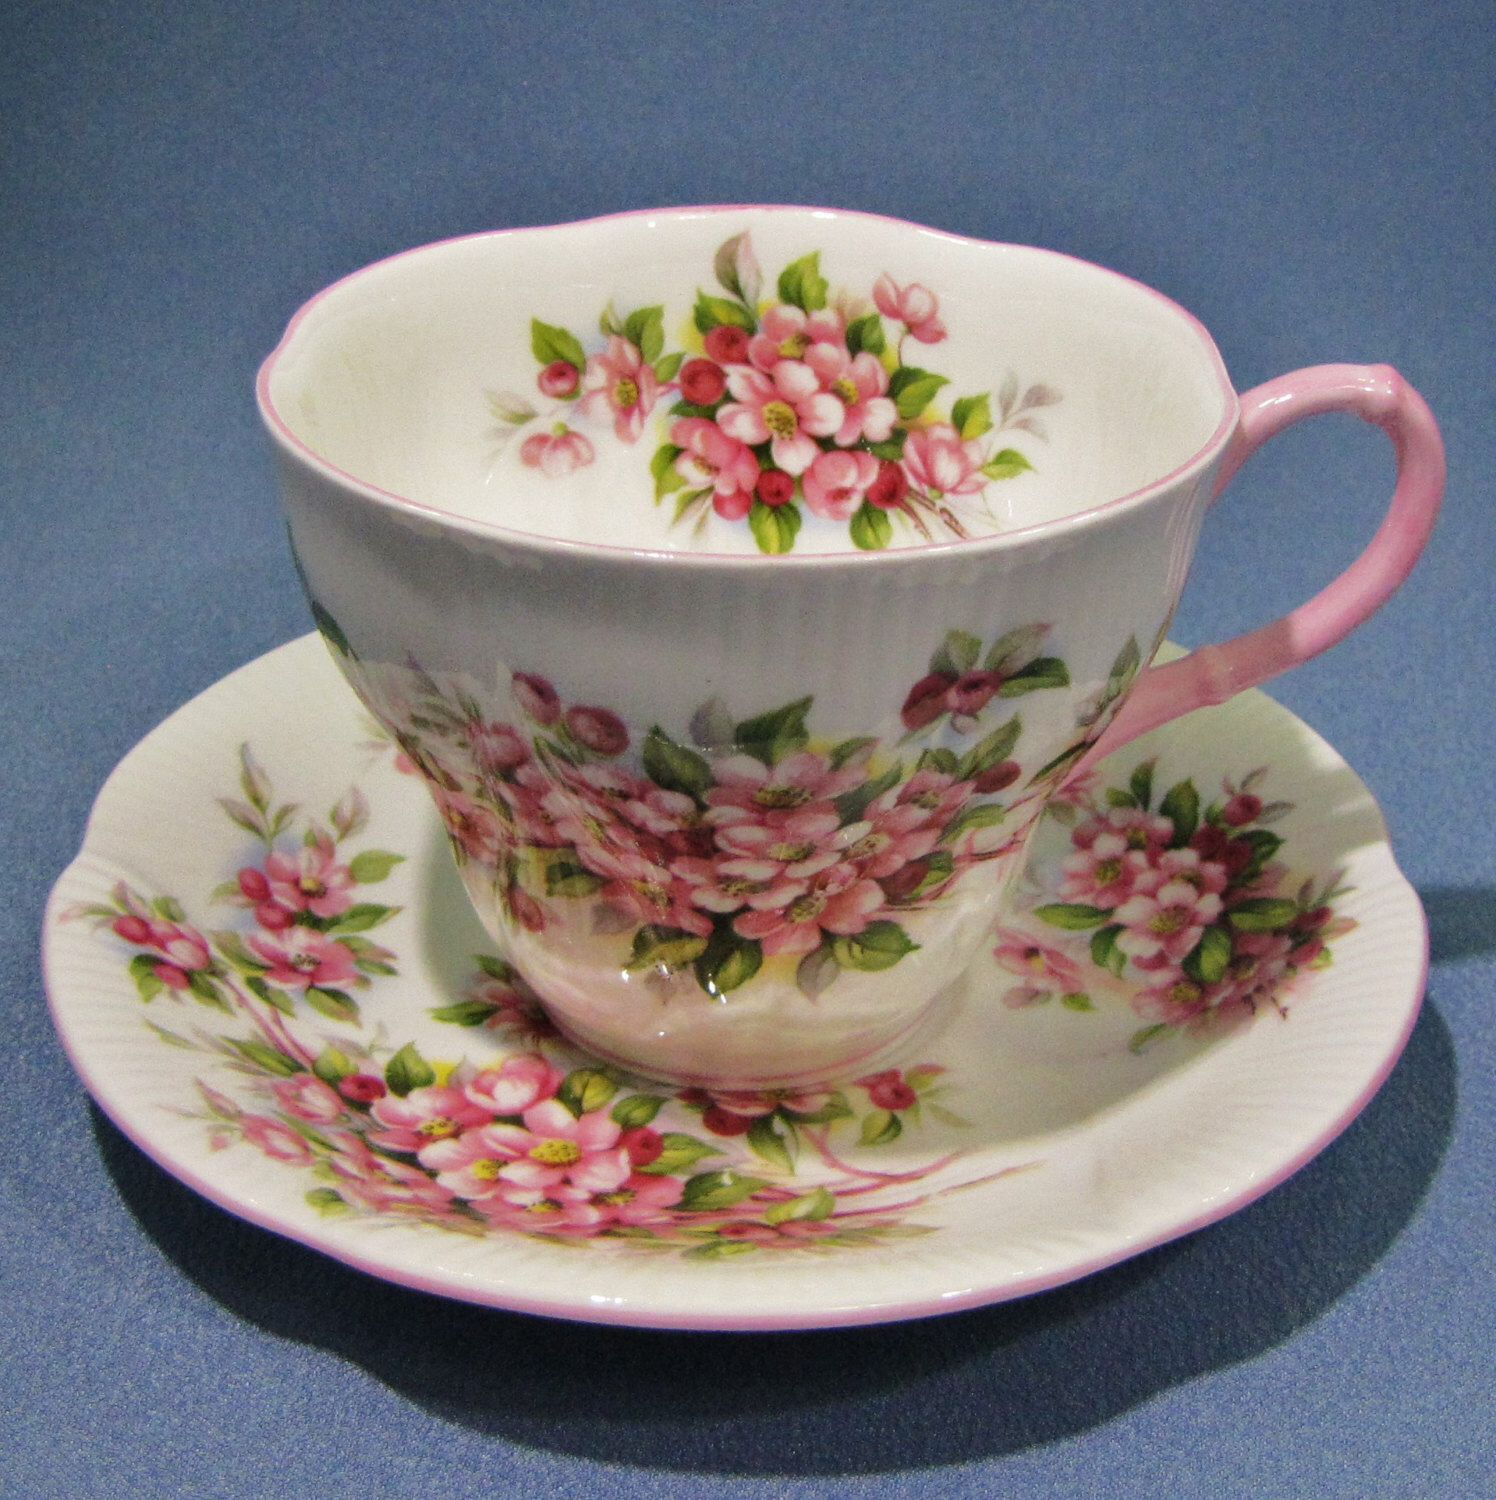 ROYAL Albert APPLE BLOSSOM Tea Cup and Saucer, Blossom Time Series, Pink Shelley Shape, Pink Handle, Made in England, Fine Bone China by Thinkilikeit on Etsy https://www.etsy.com/ca/listing/478246632/royal-albert-apple-blossom-tea-cup-and